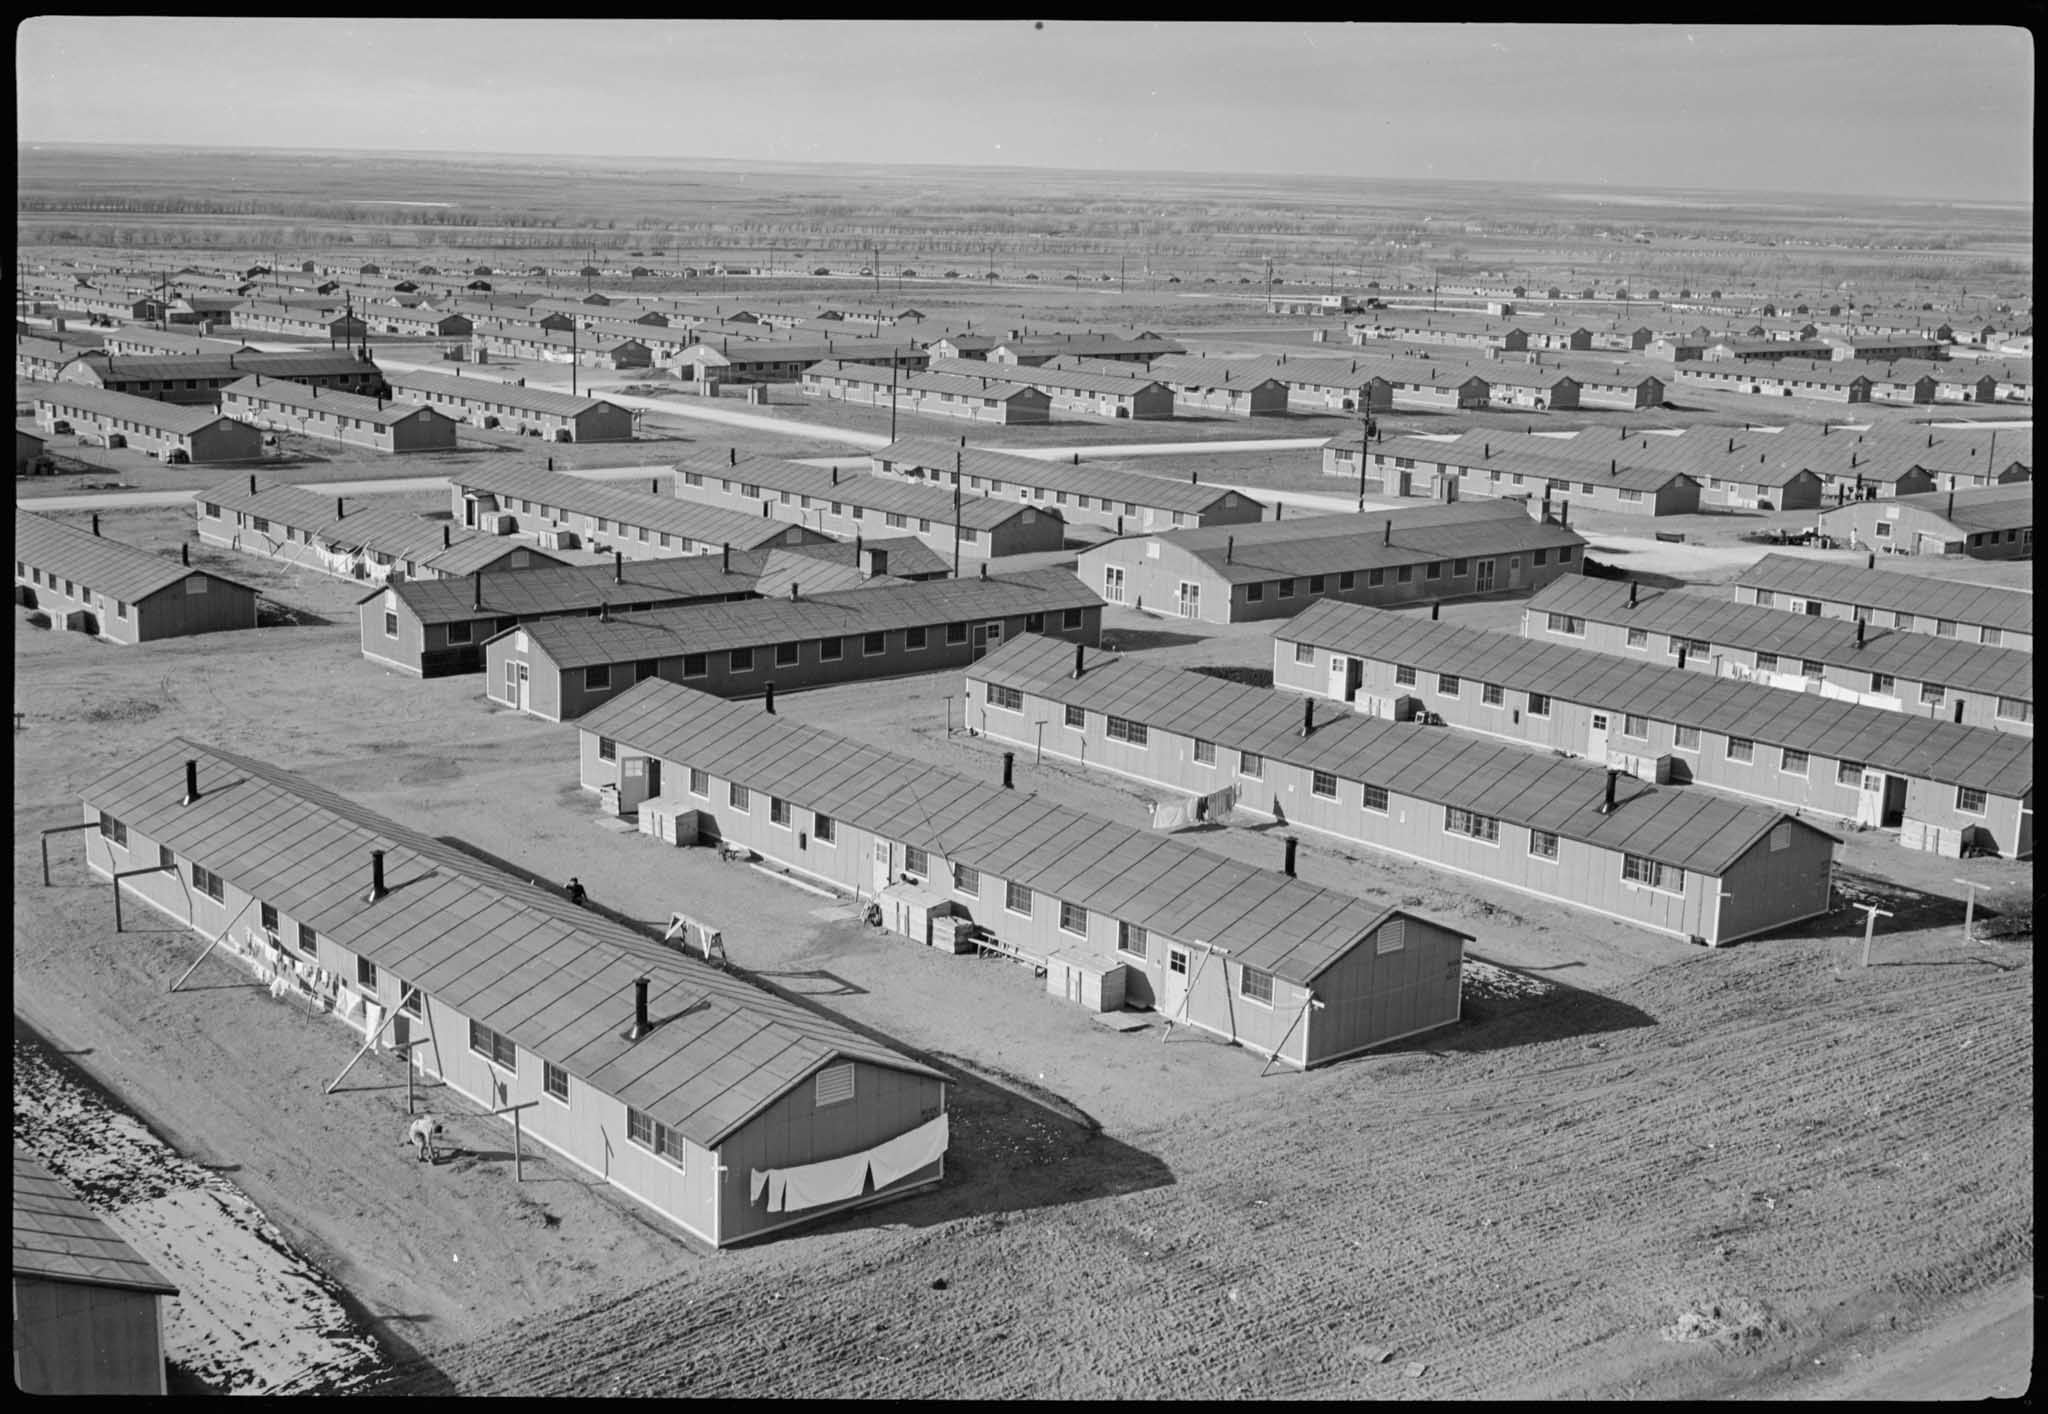 View of the Granada Relocation Center from above